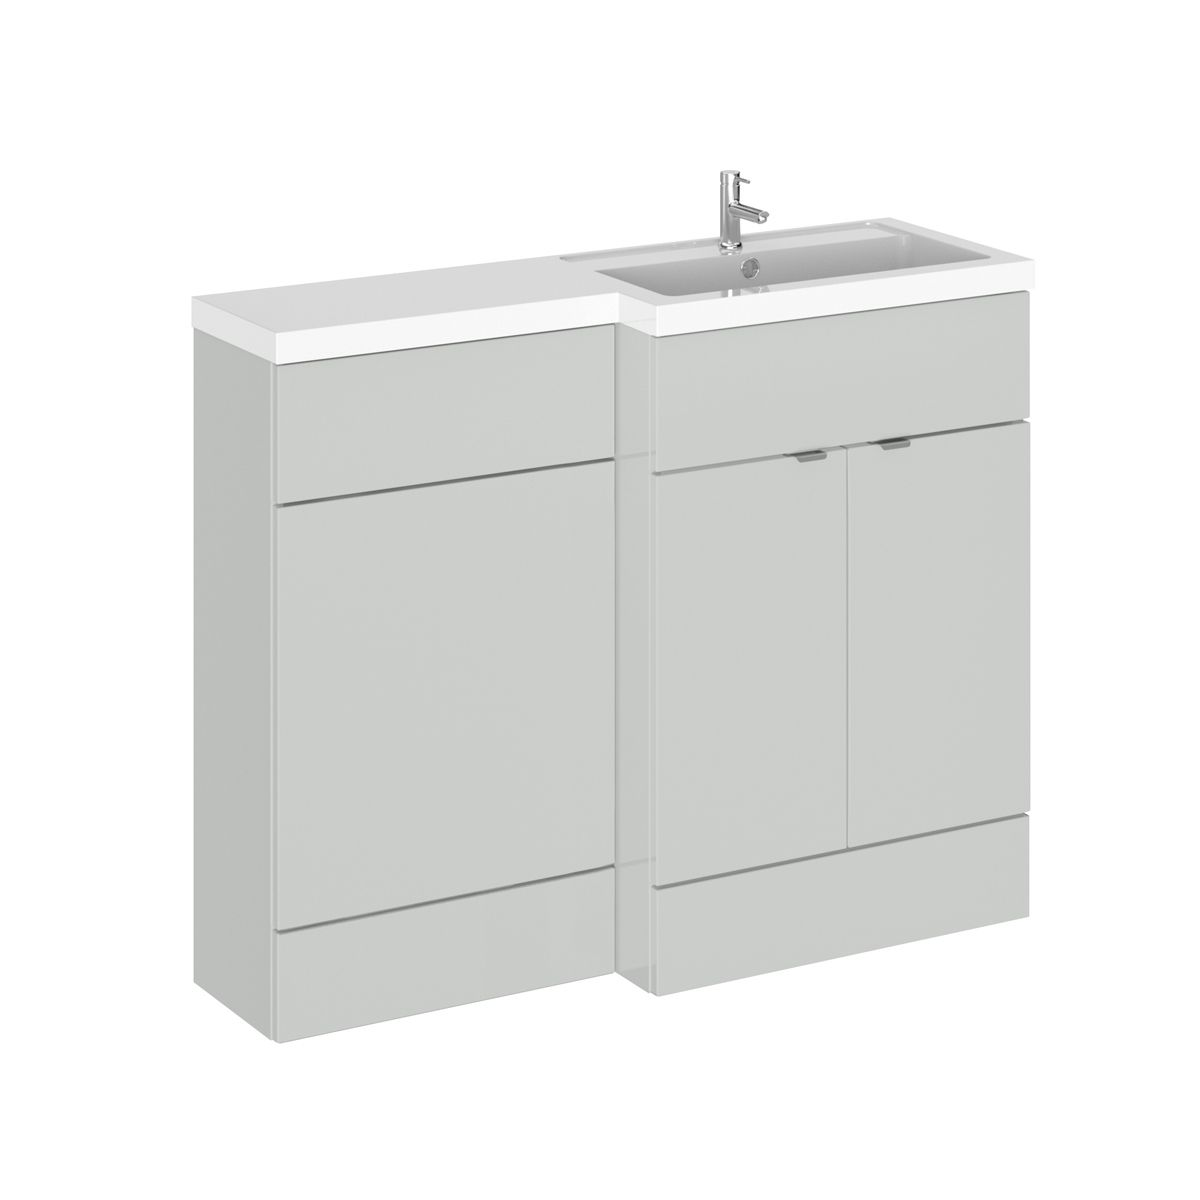 Hudson Reed Fusion Gloss Grey Mist Full Depth Combination Furniture Pack 1100mm Right Hand